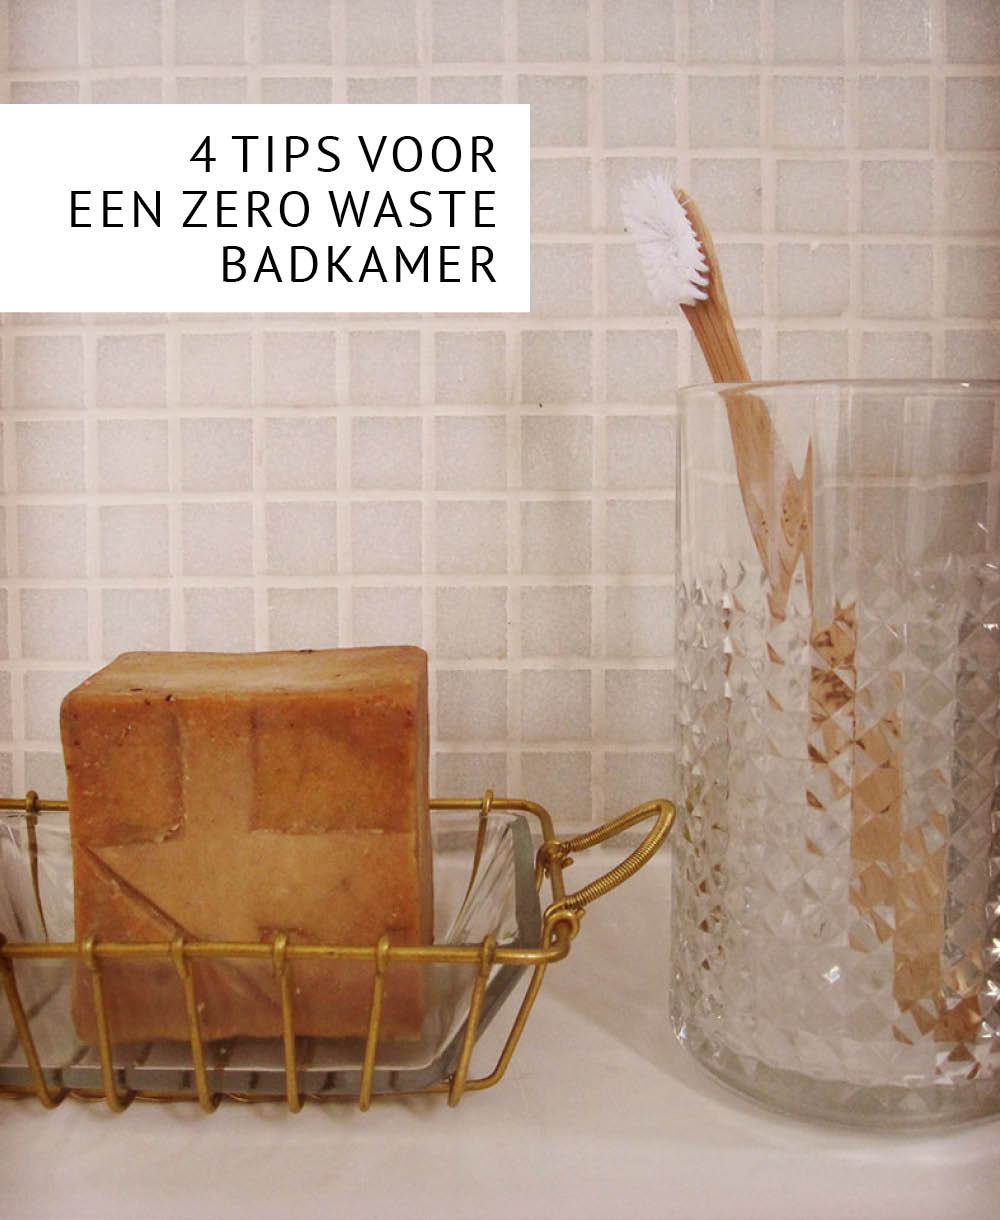 Empty the Fridge - Zero waste badkamer